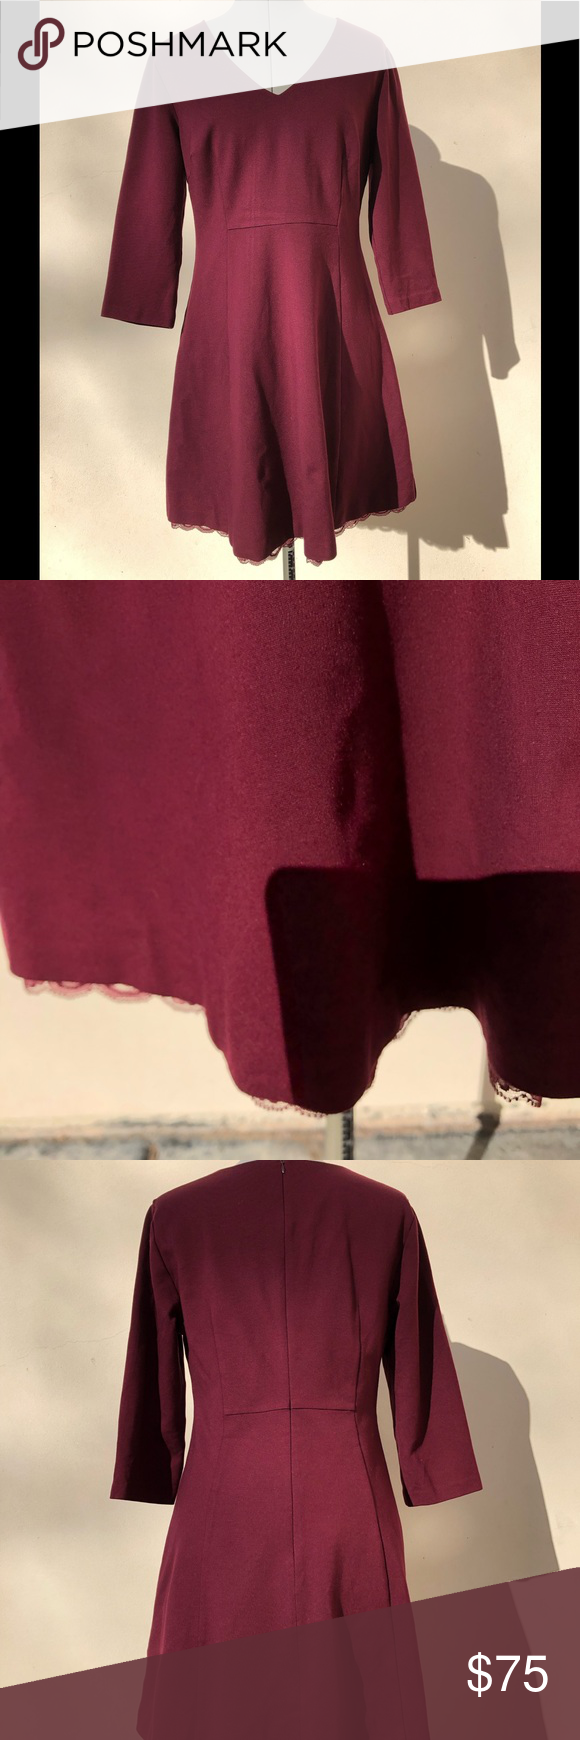 4a2eea9bdc3 Trina Turk Burgundy Dress Beautifully tailored with nice heavy fabric that  drapes well and has some stretch. Darling lace detail at hem.